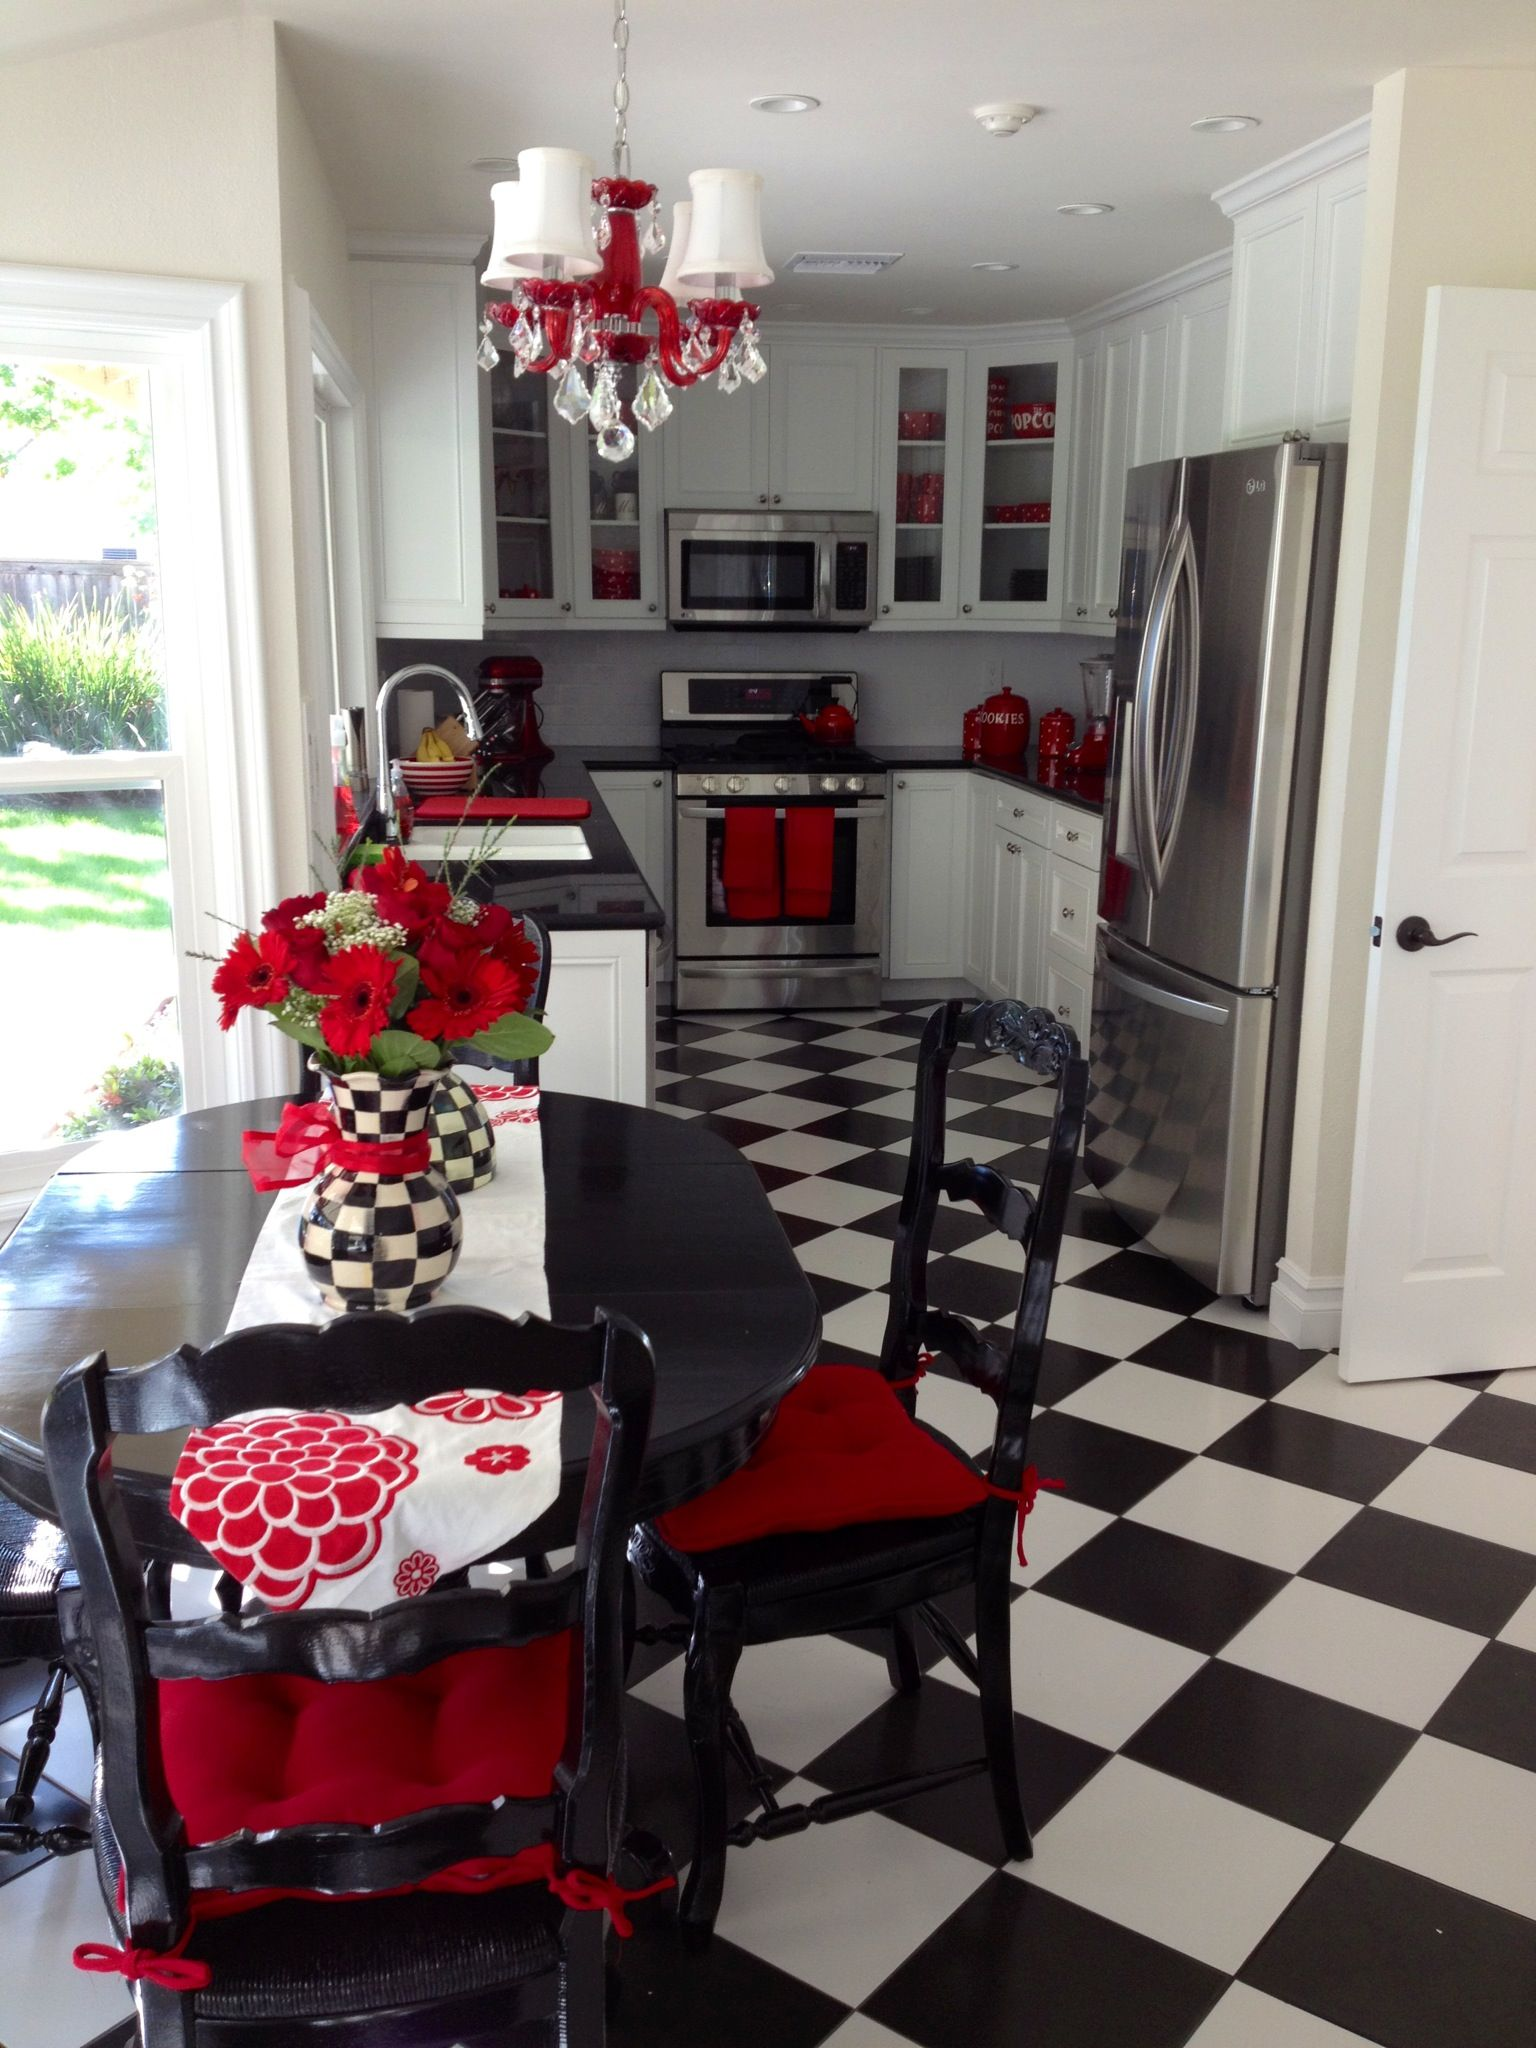 Pin By Elise Jackson On Home Red Kitchen Decor Black And Red Kitchen Black Kitchen Decor